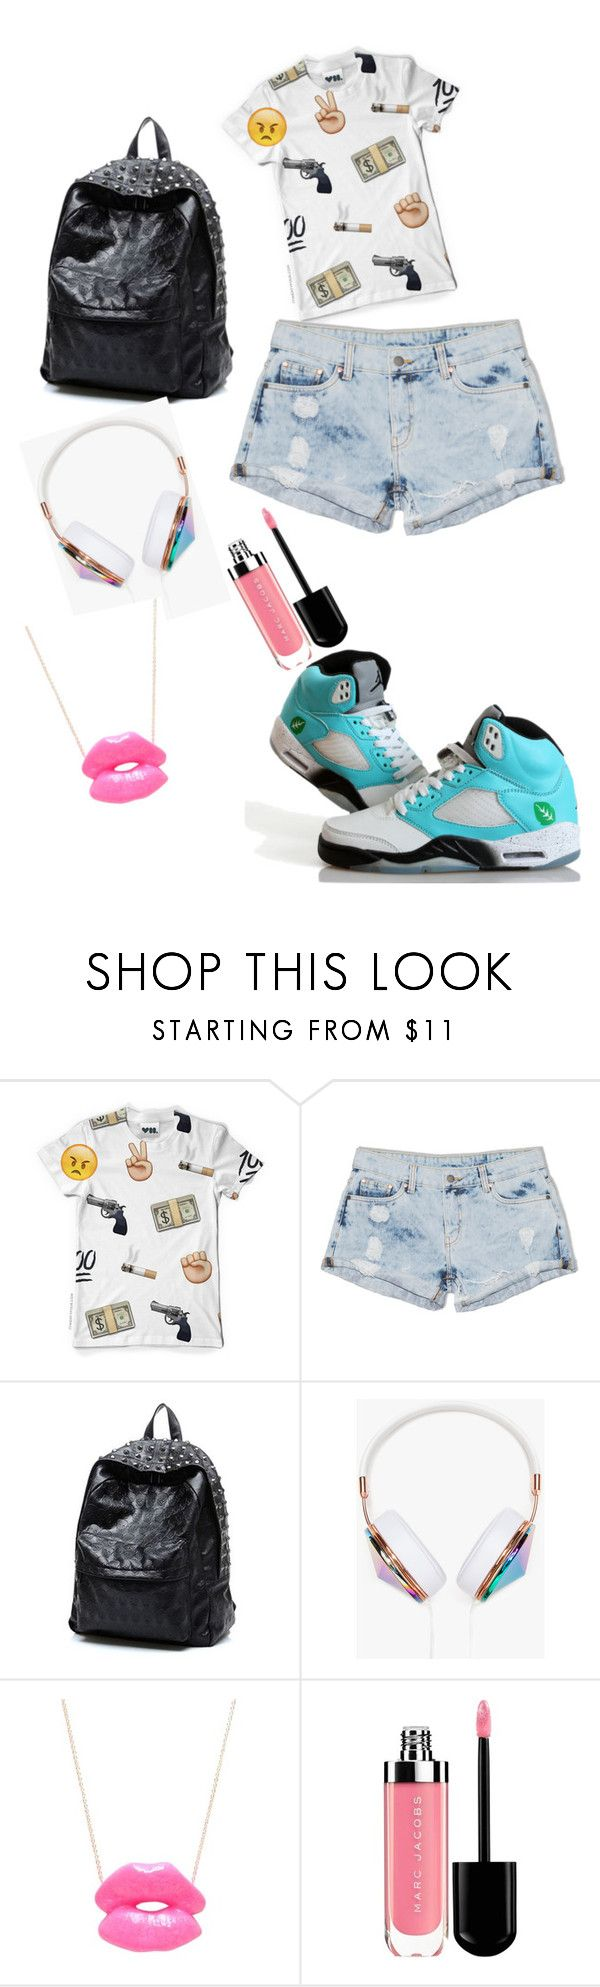 """""""Typical high school teenage outfit follow me and I'll follow you back"""" by neyra-rodriguez ❤ liked on Polyvore featuring Dricoper, Frends and Elephant Heart"""